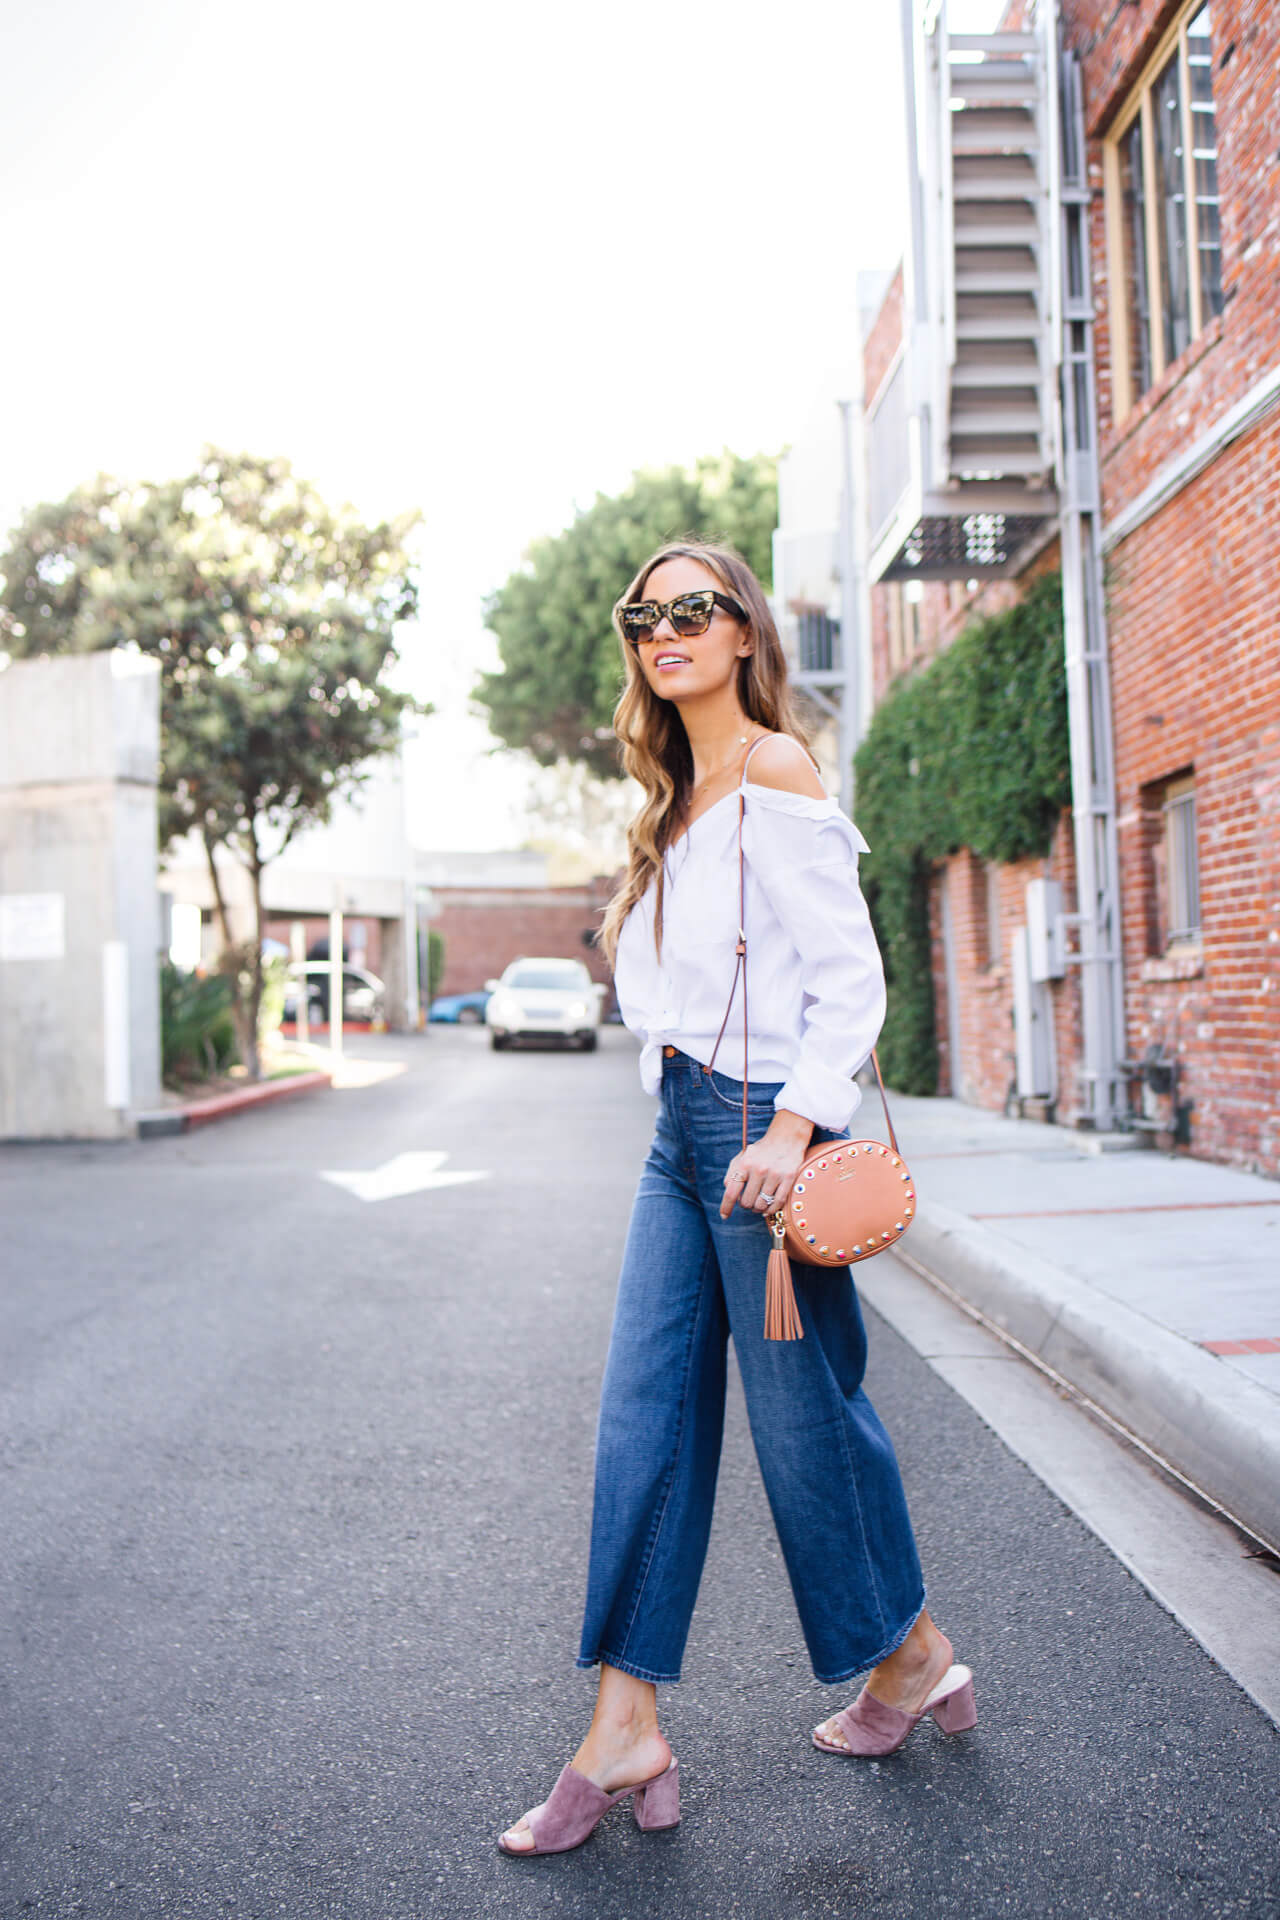 Looking chic and styled while on the go | M Loves M - @marmar